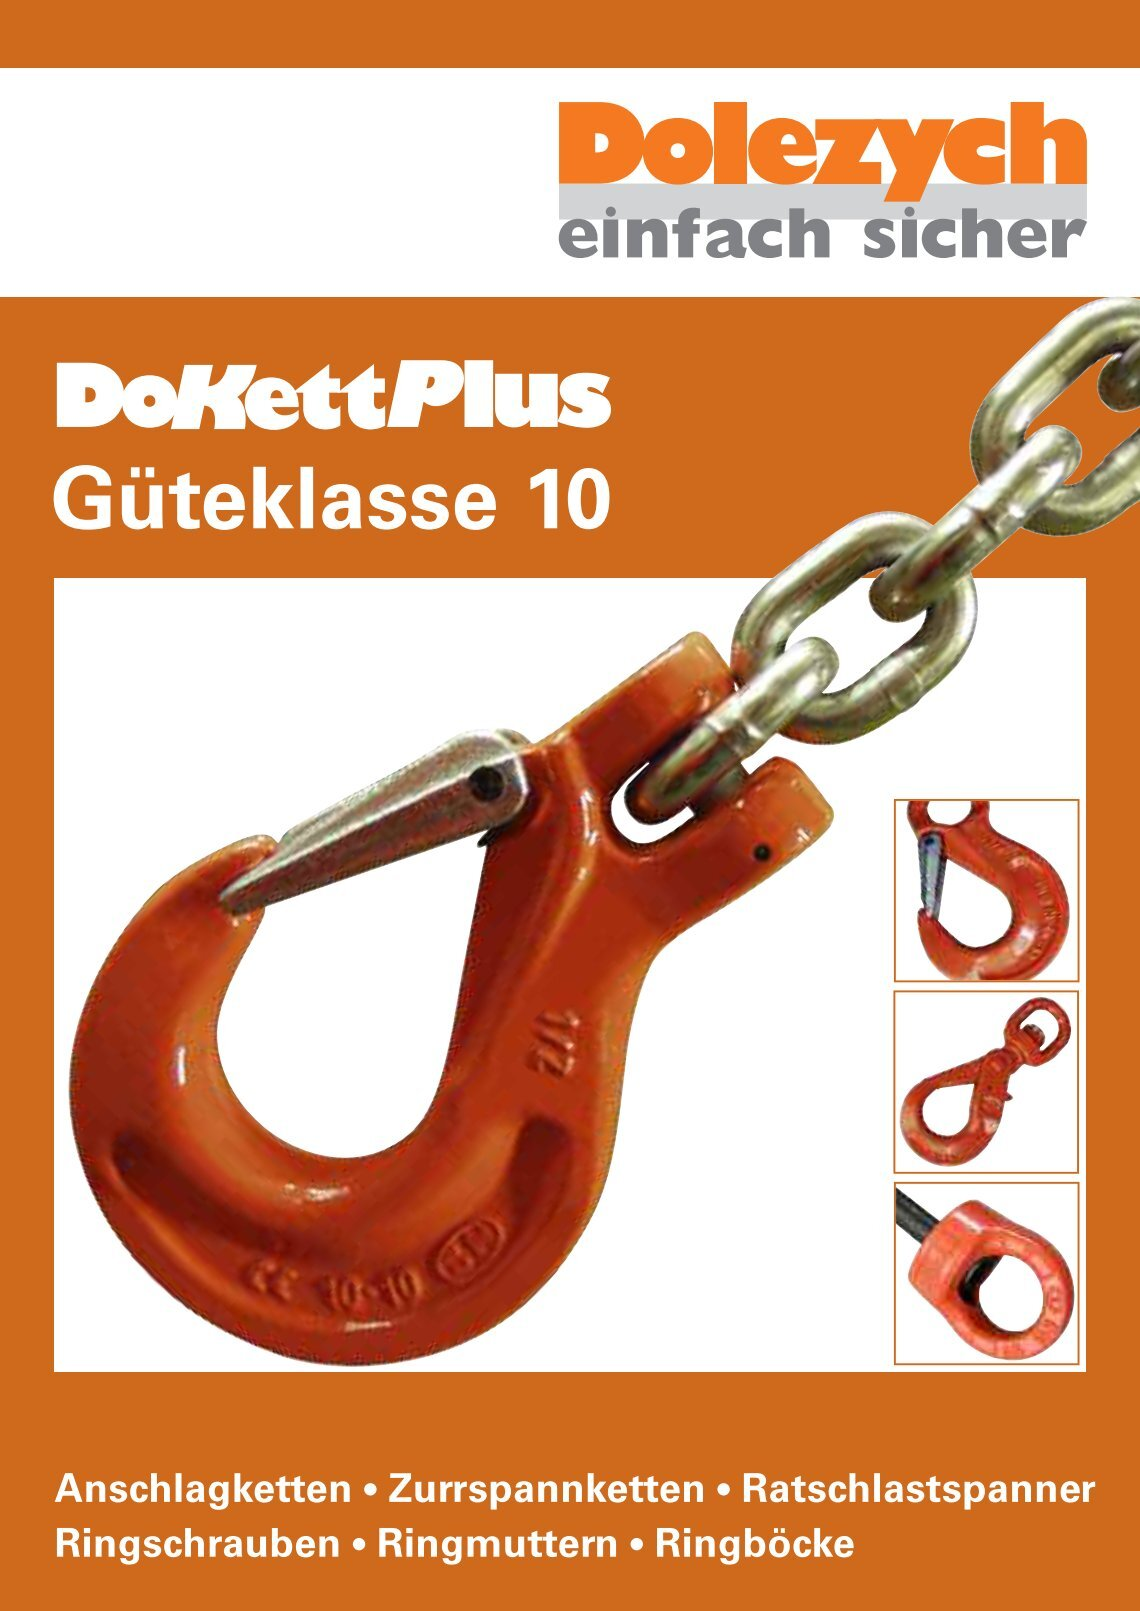 20 free Magazines from DOLEZYCH